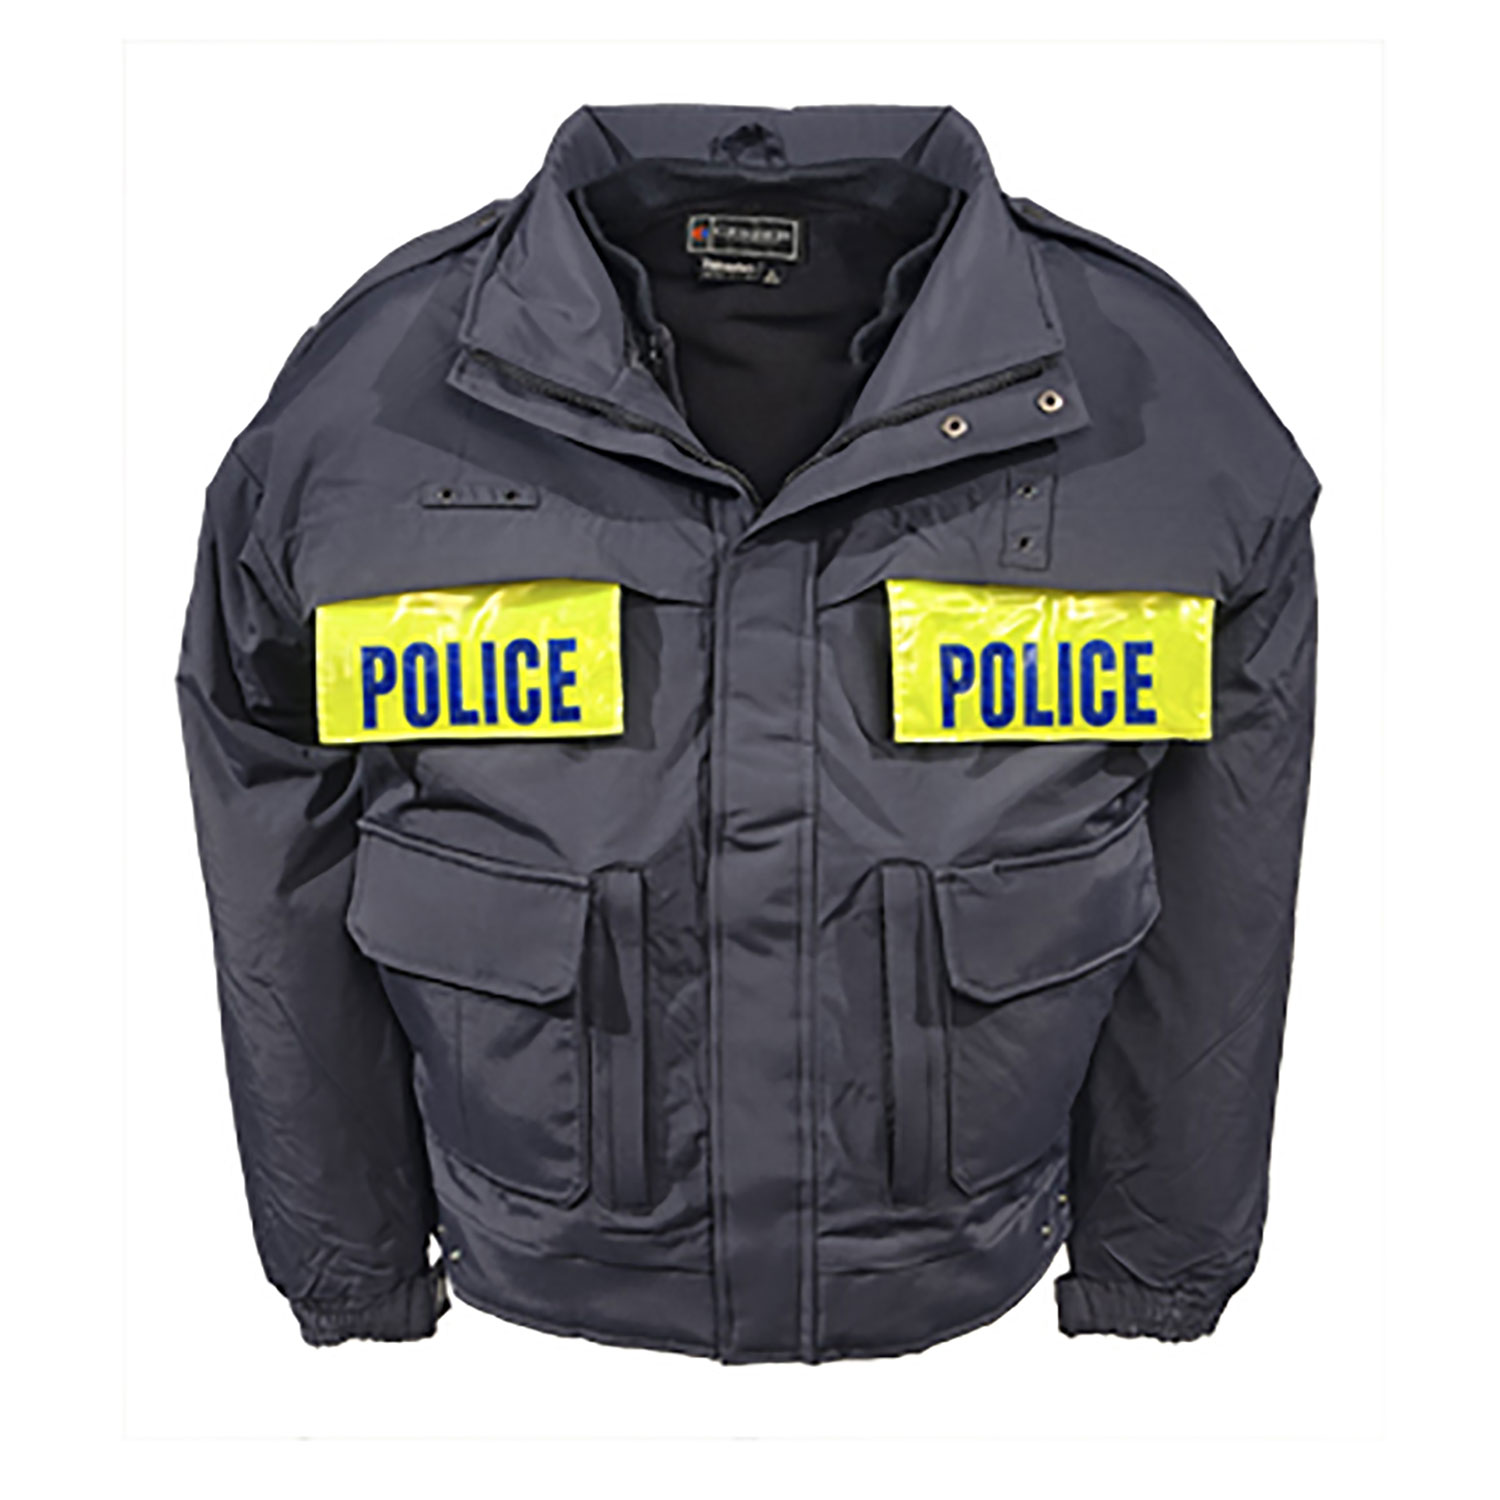 Gerber Enforcer Jacket with Pull Down Plain Panels